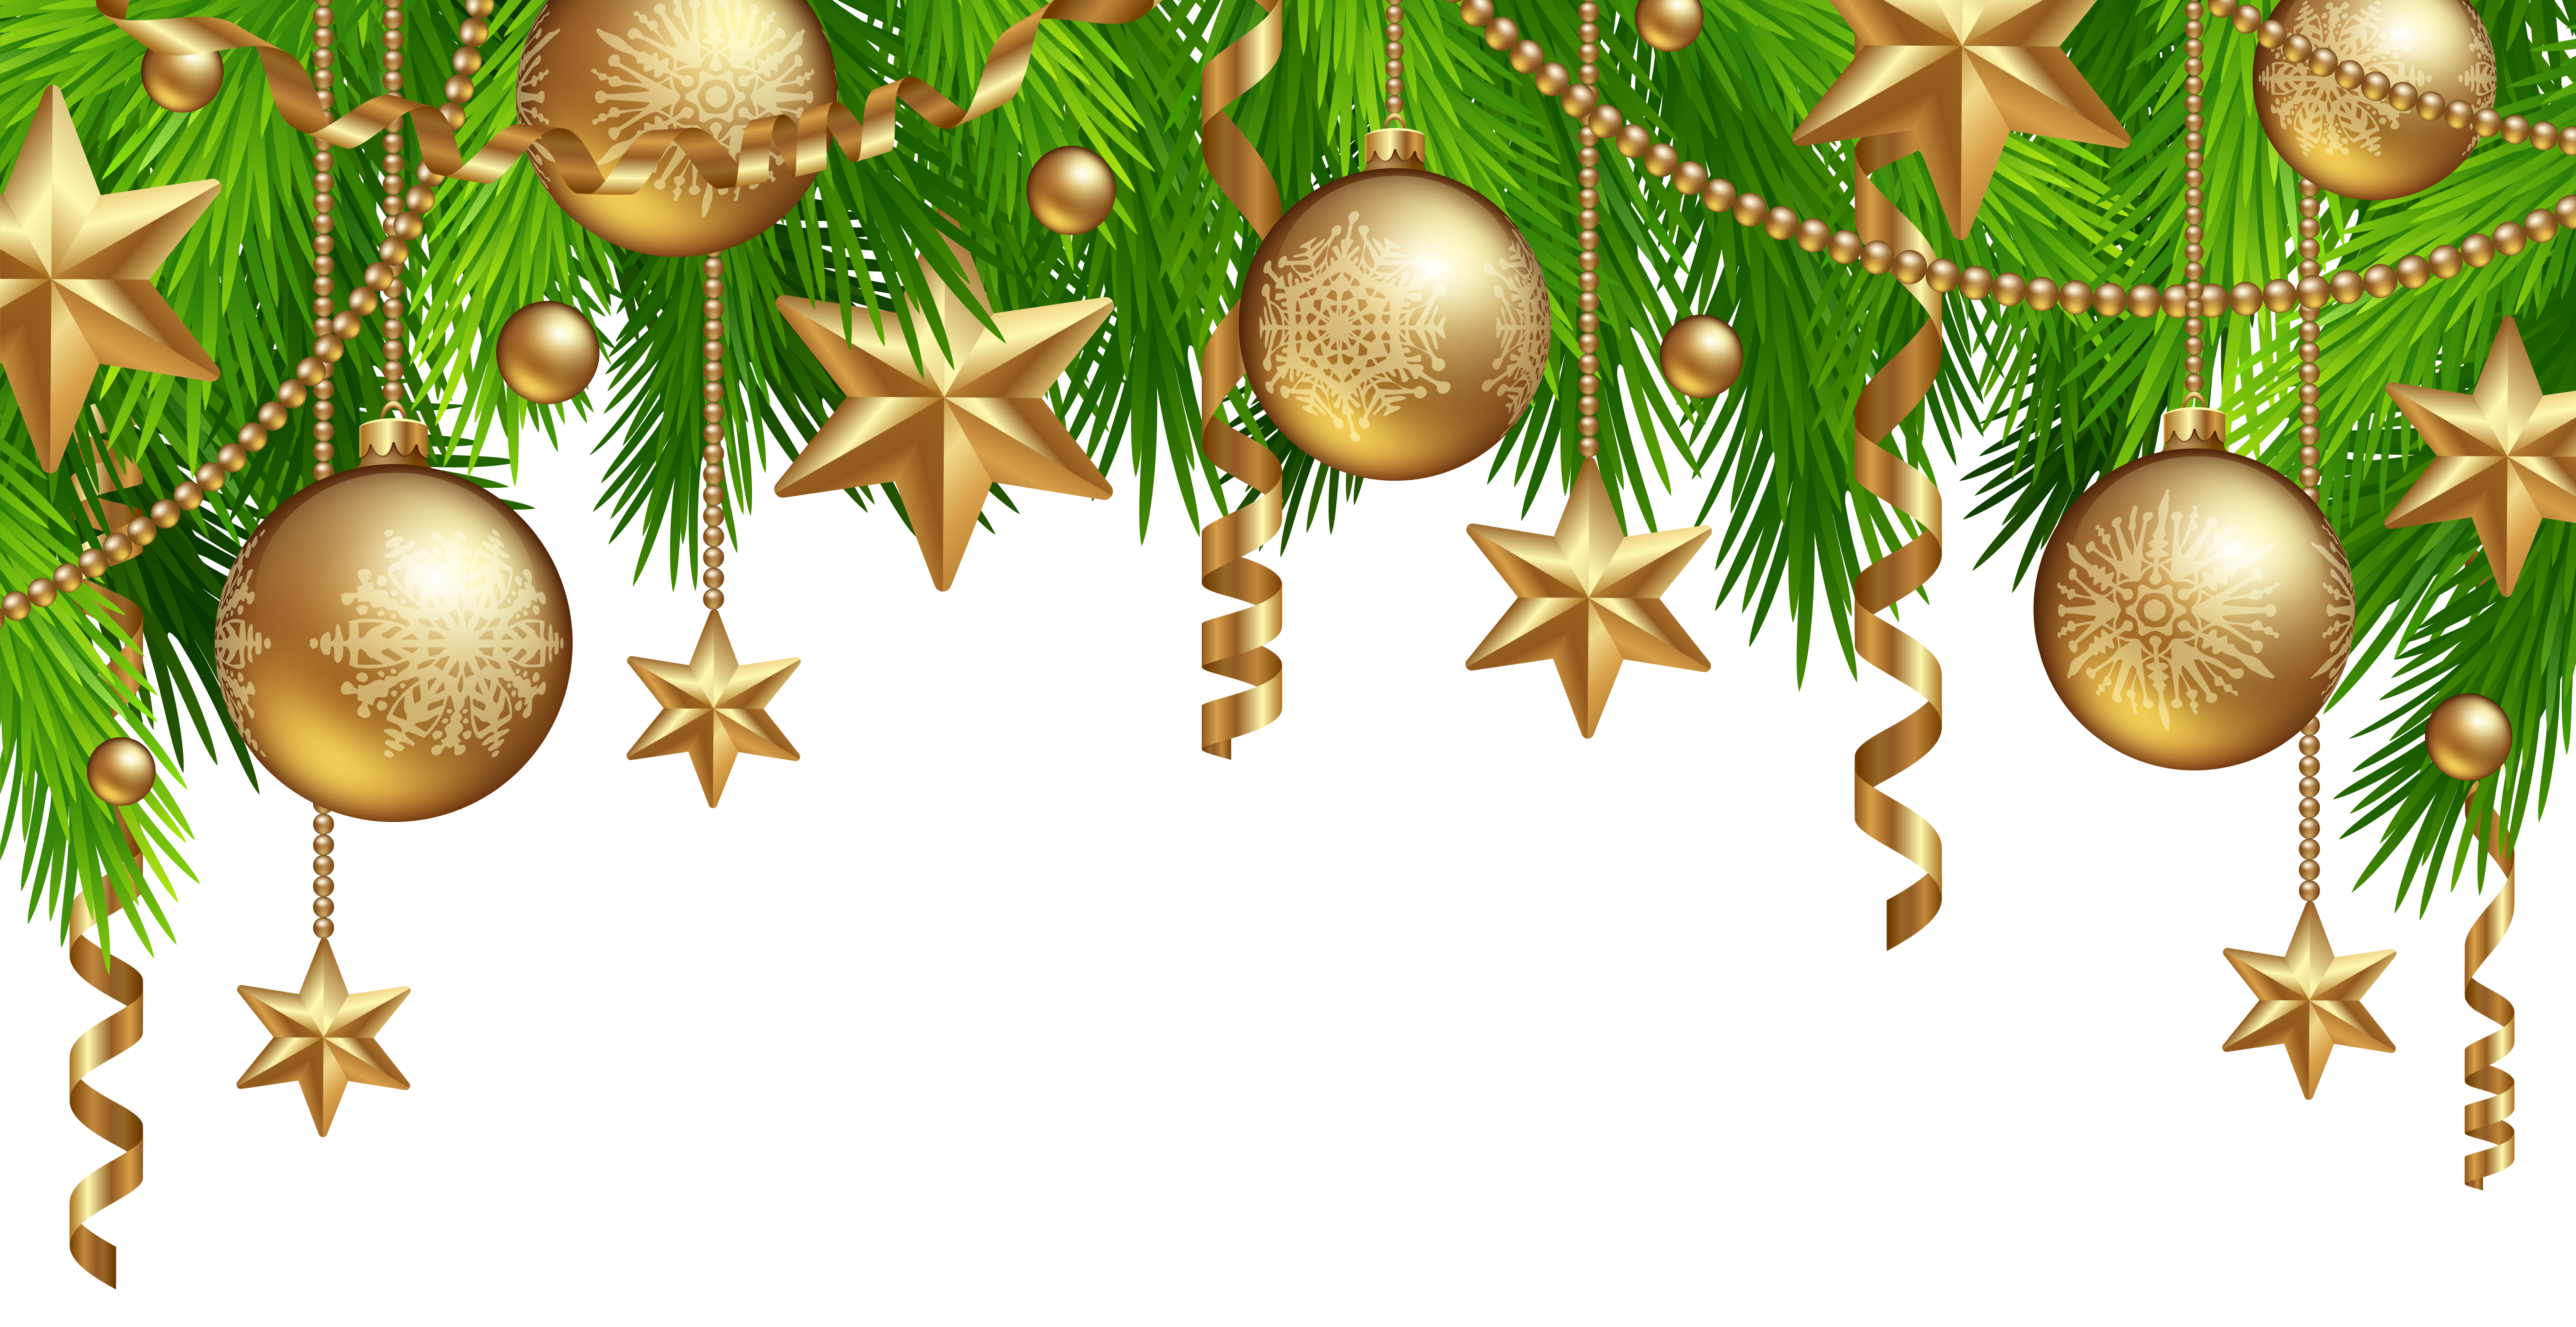 Christmas border decor png clipart image marocco for X mas decorations png